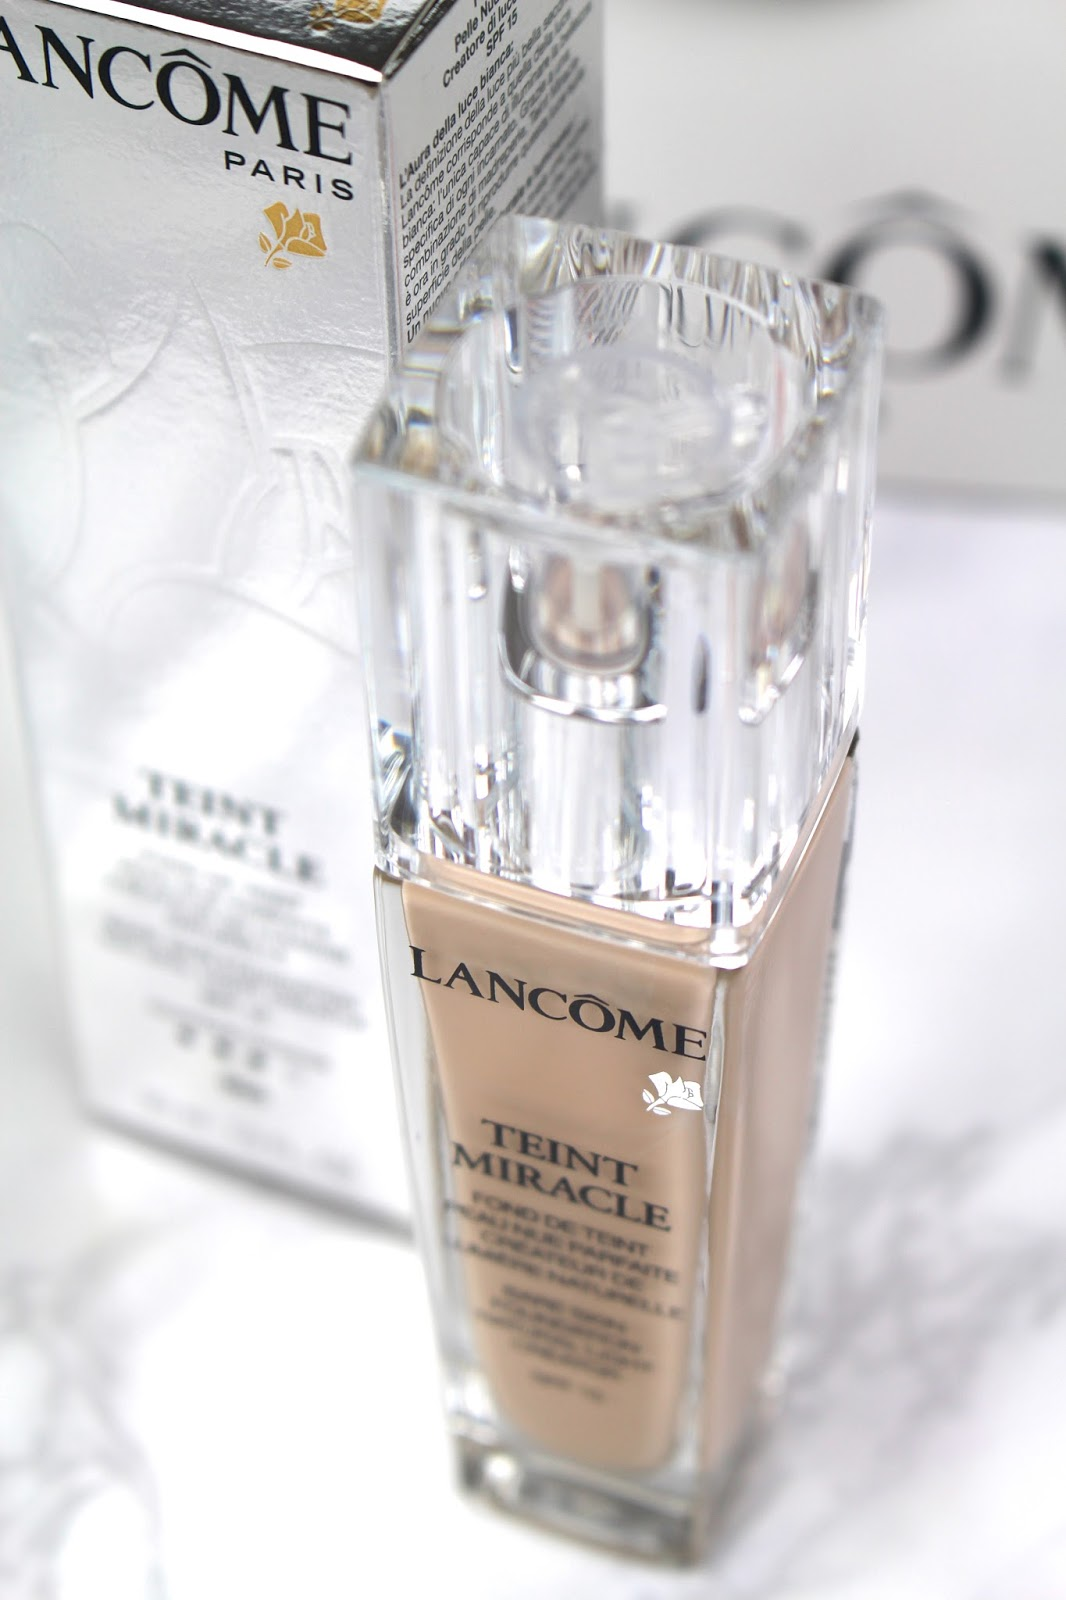 lancome teint miracle review 005